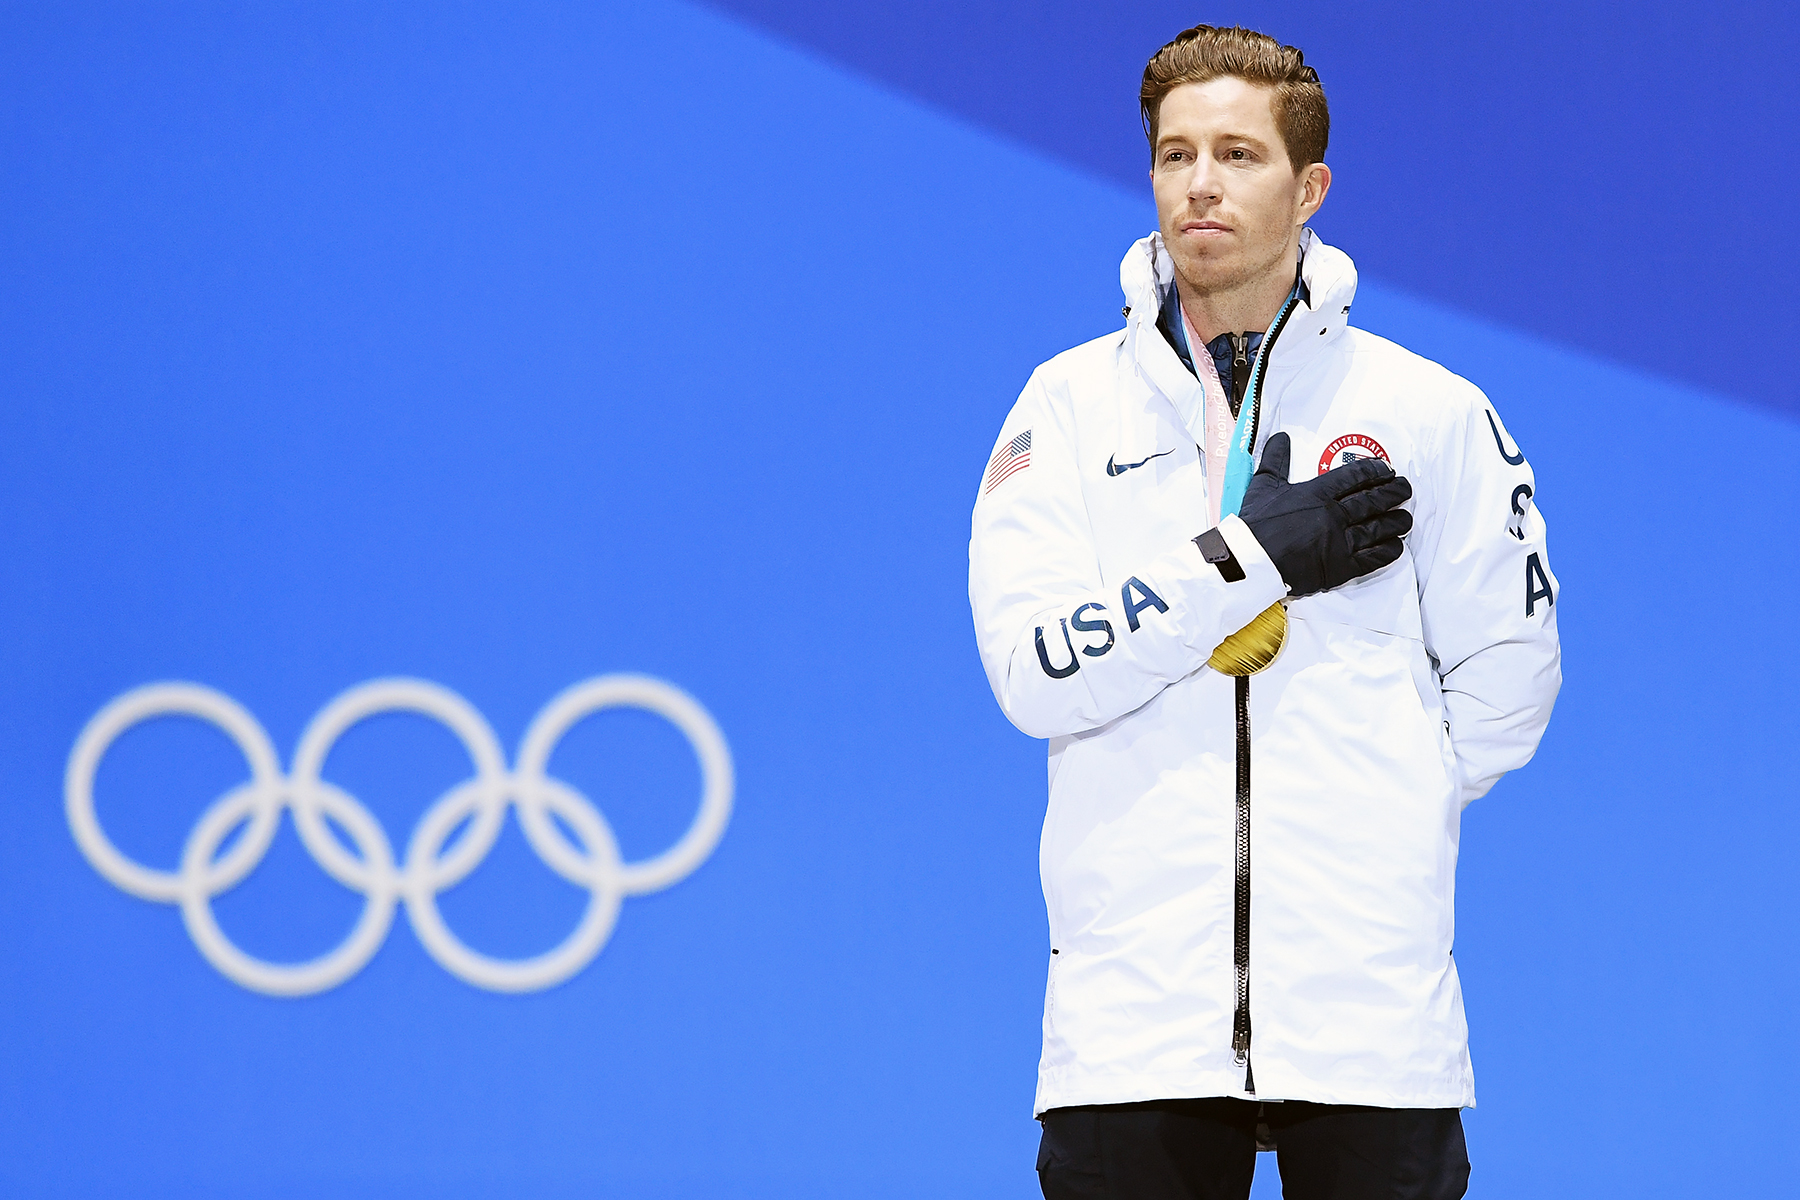 Shaun White Apologizes